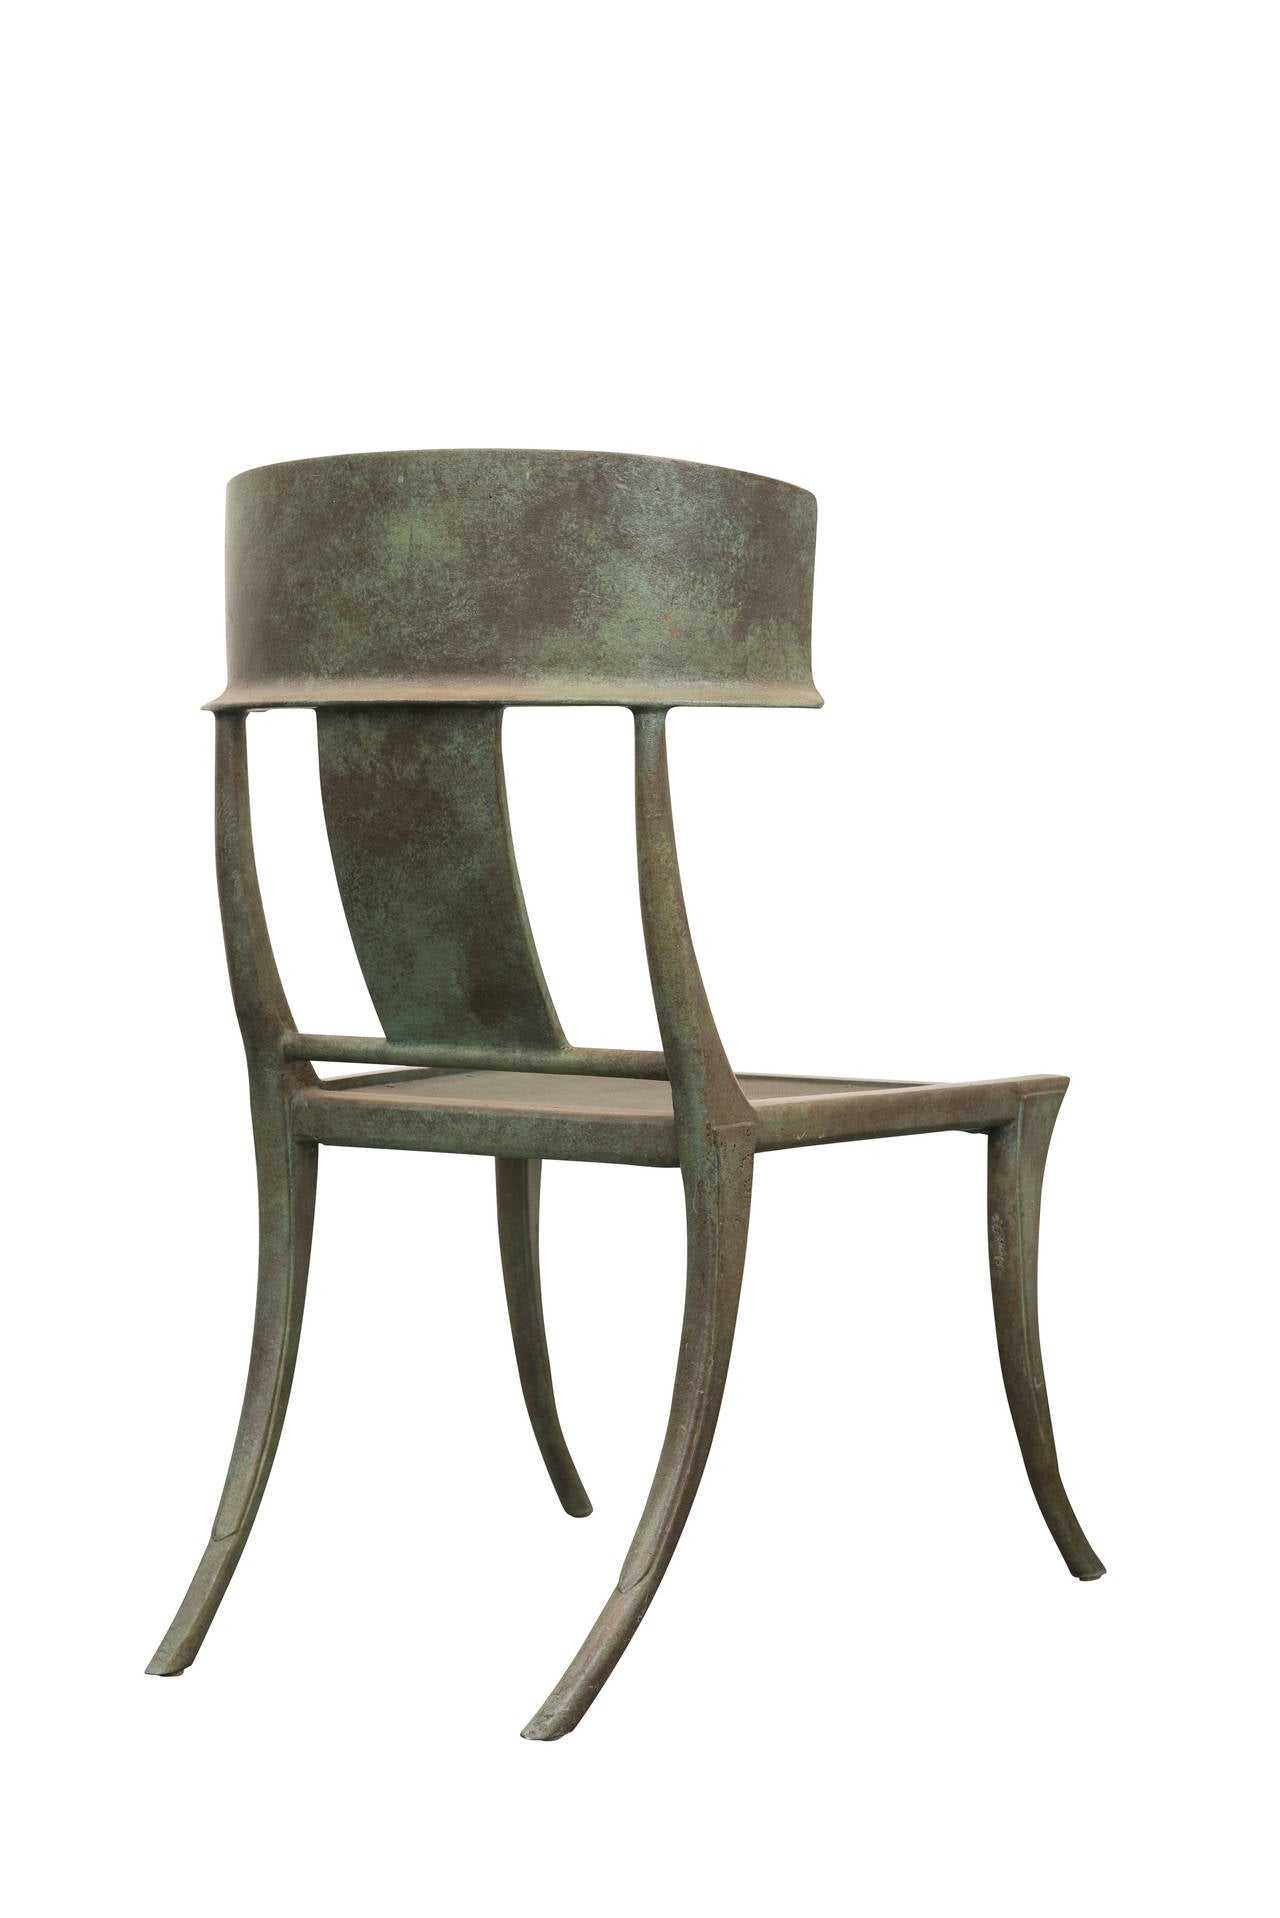 michael taylor set of four metal klismos chairs at 1stdibs